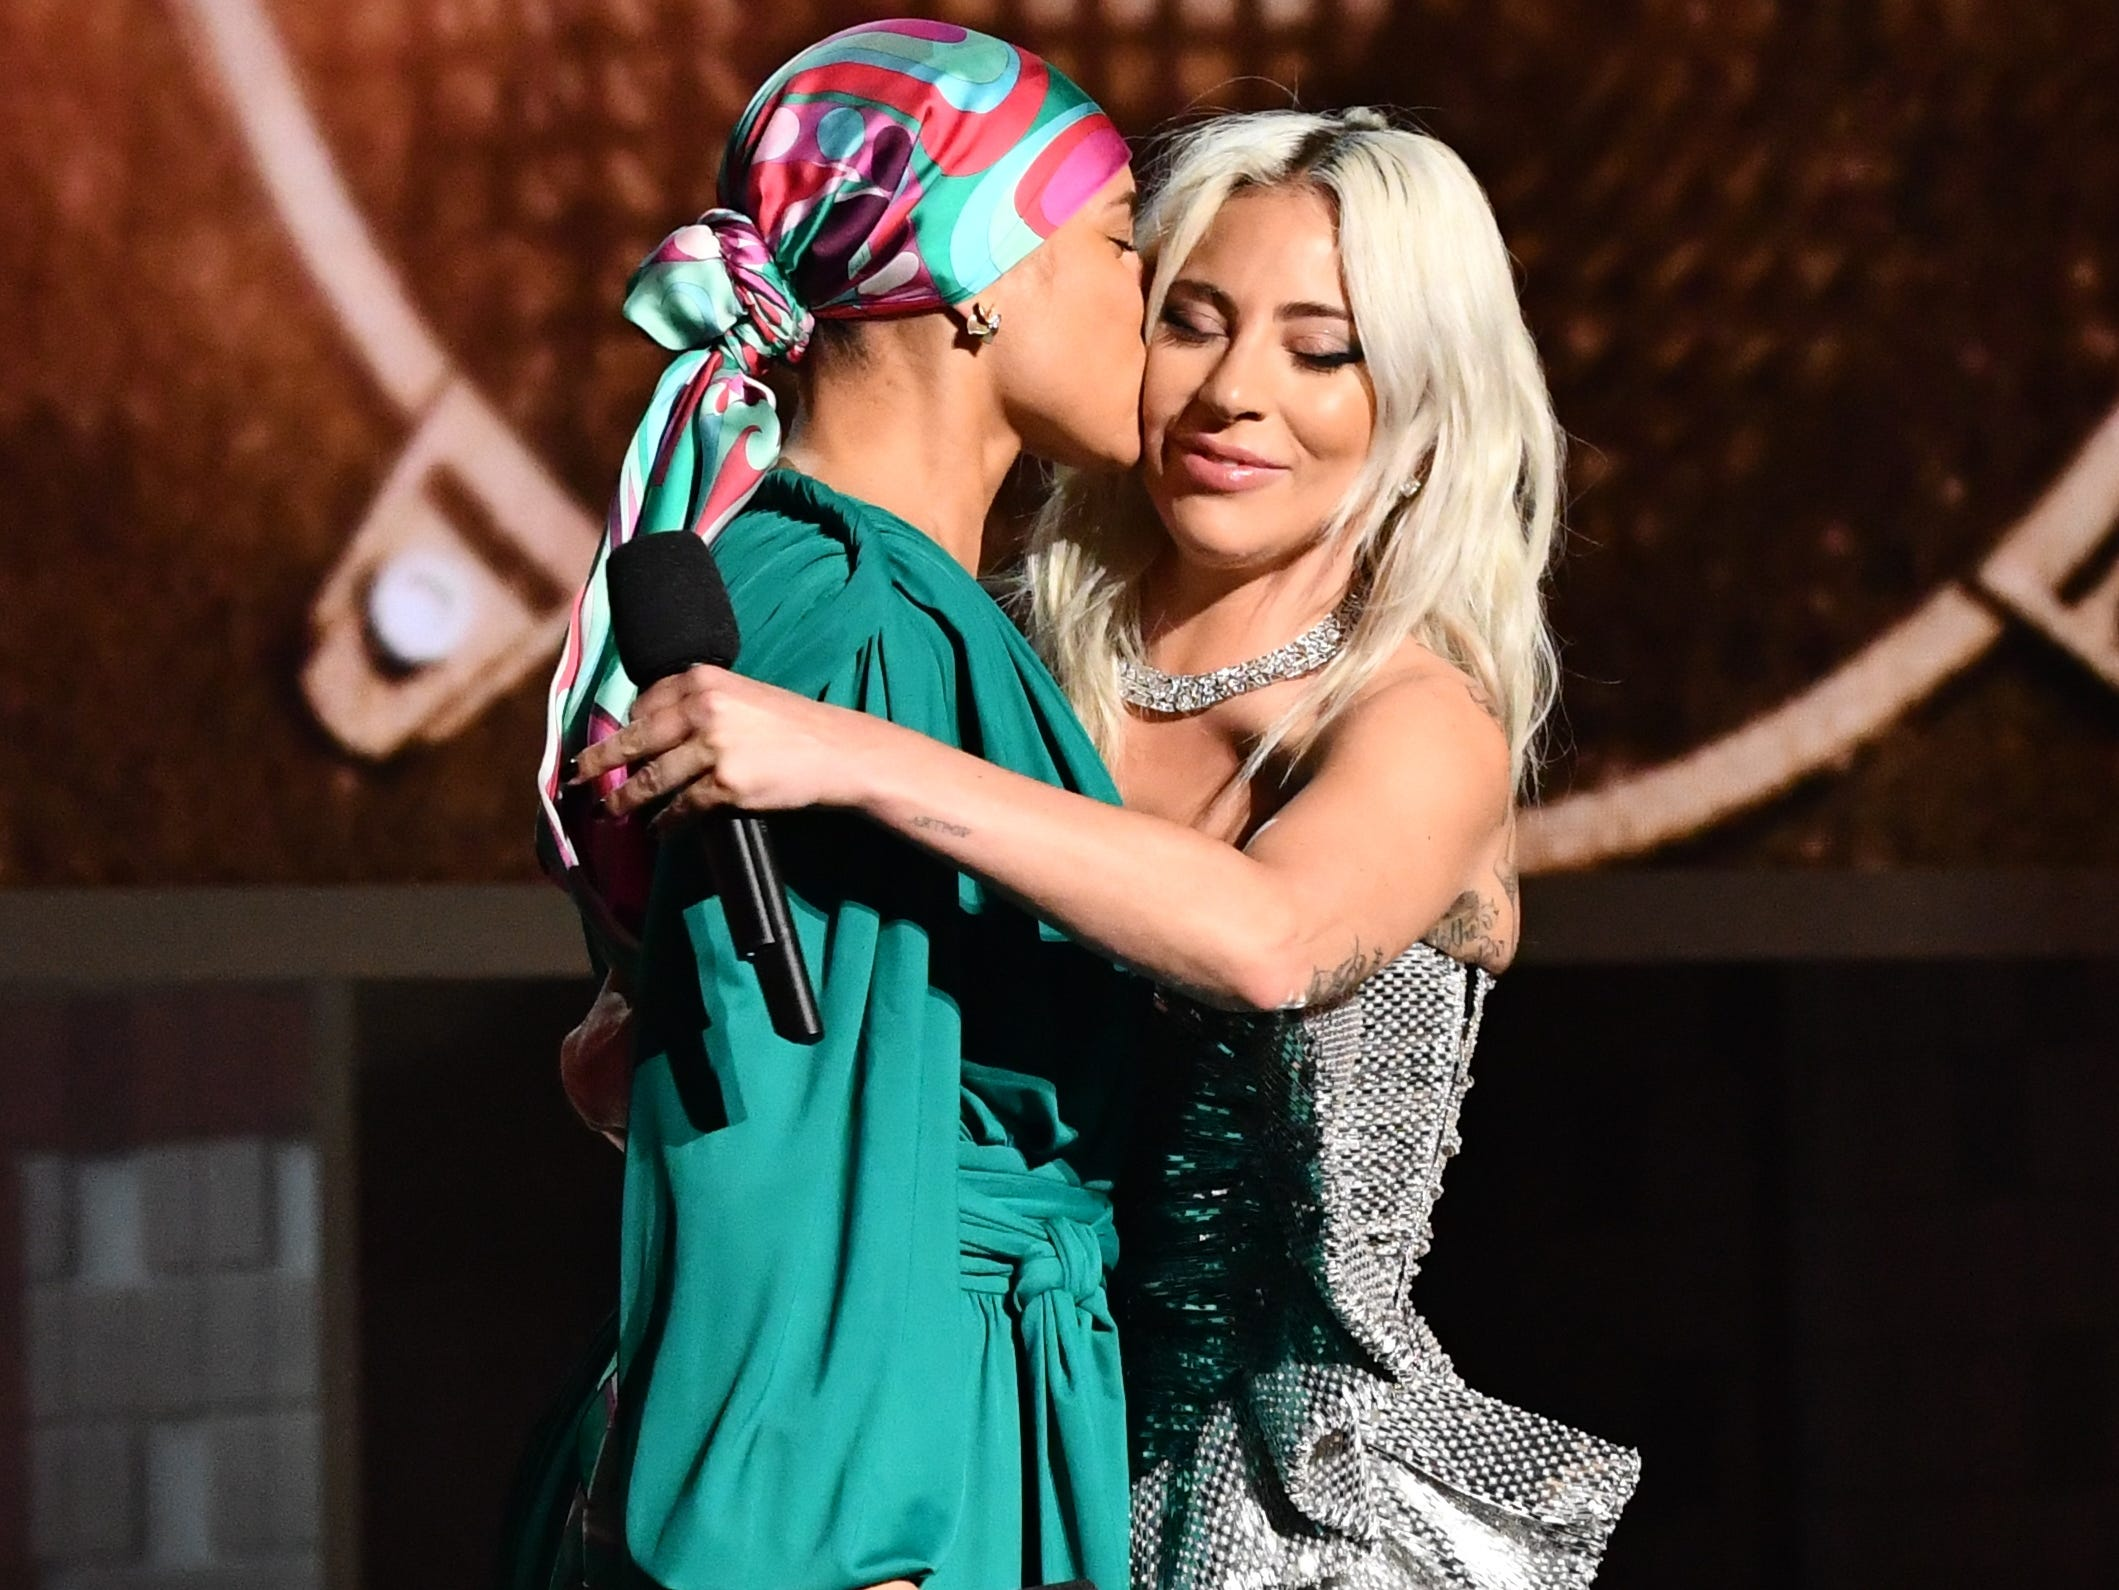 Alicia Keys and Lady Gaga hug during the  Grammy Awards.